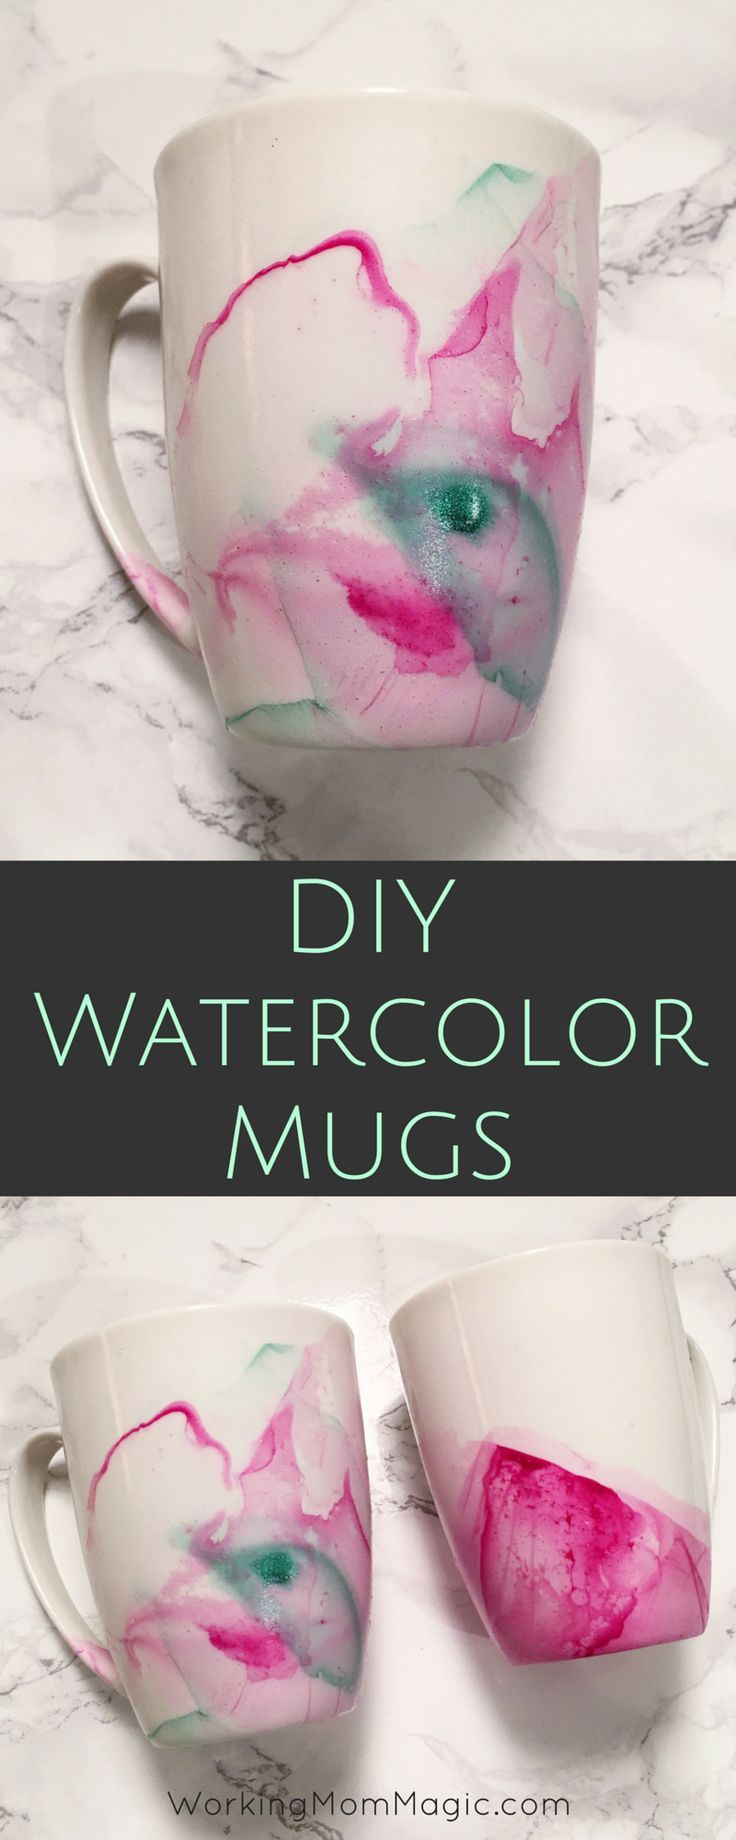 Create beautiful mugs using nail polish & mugs from the Dollar Store! SO easy and it takes just minutes!